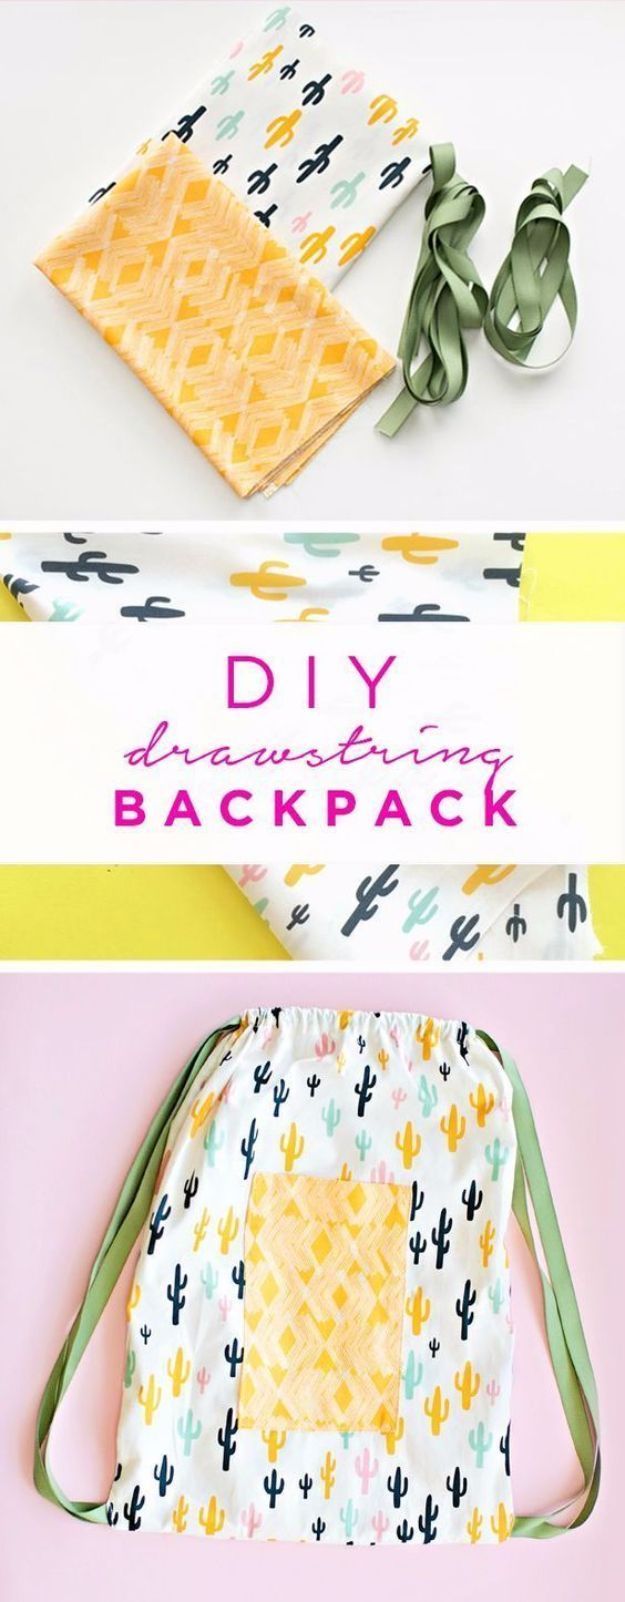 Best Sewing Projects to Make For Boys - DIY Drawstring Backpack - Creative Sewing Tutorials for Baby Kids and Teens - Free Patterns and Step by Step Tutorials for Jackets, Jeans, Shirts, Pants, Hats, Backpacks and Bags - Easy DIY Projects and Quick Crafts Ideas http://diyjoy.com/cute-sewing-projects-for-boys